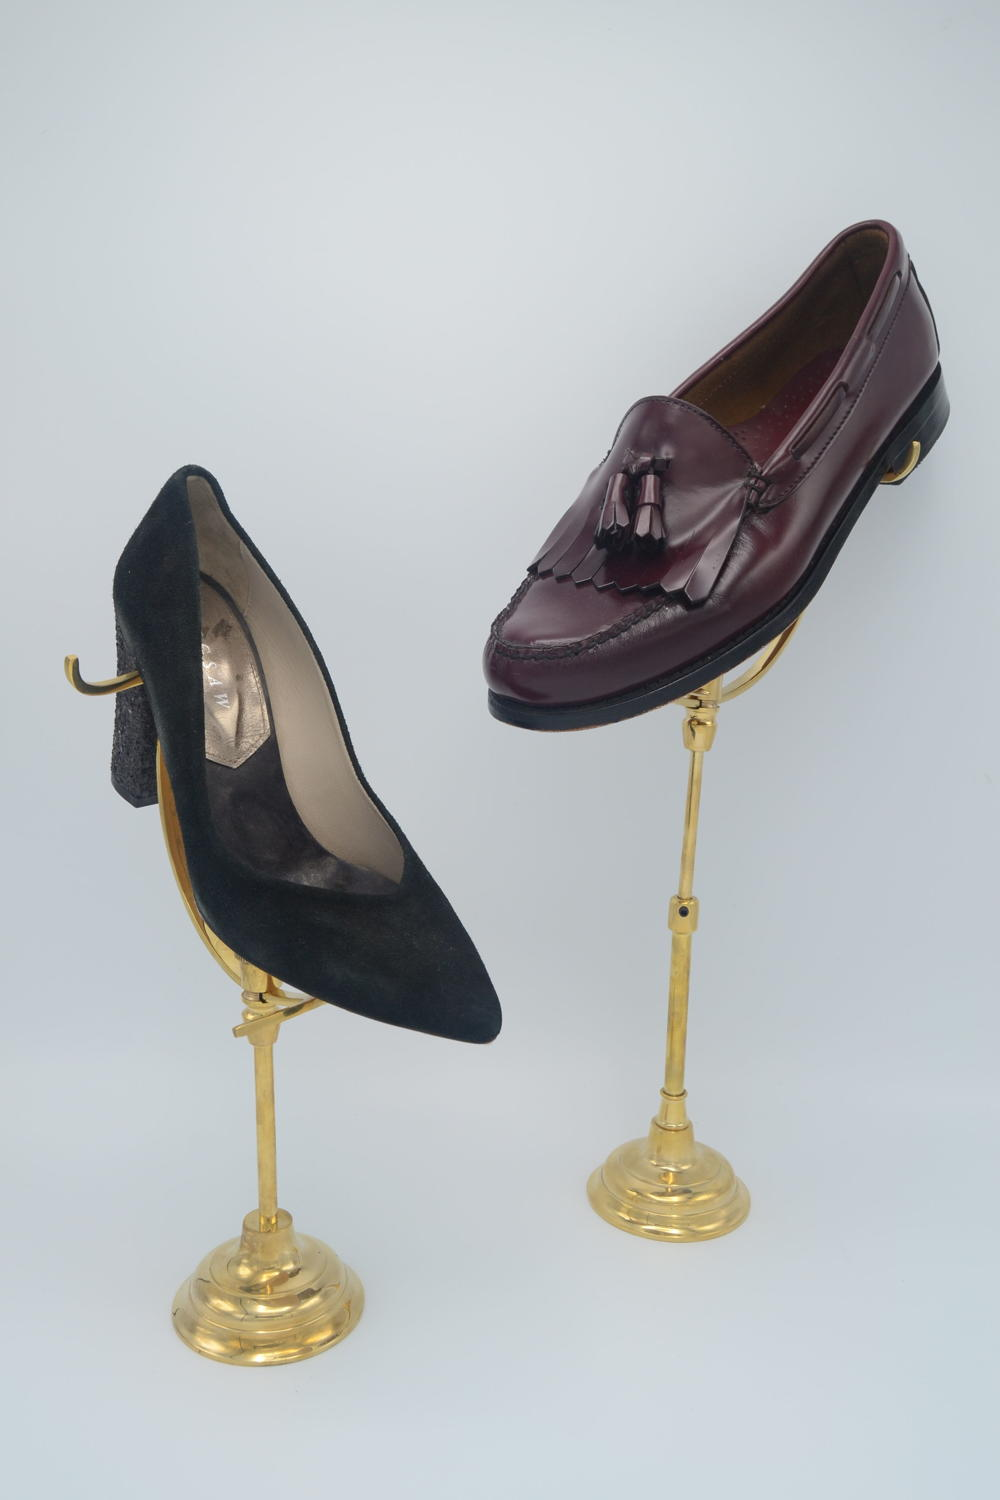 Vintage Style Shoe Stands